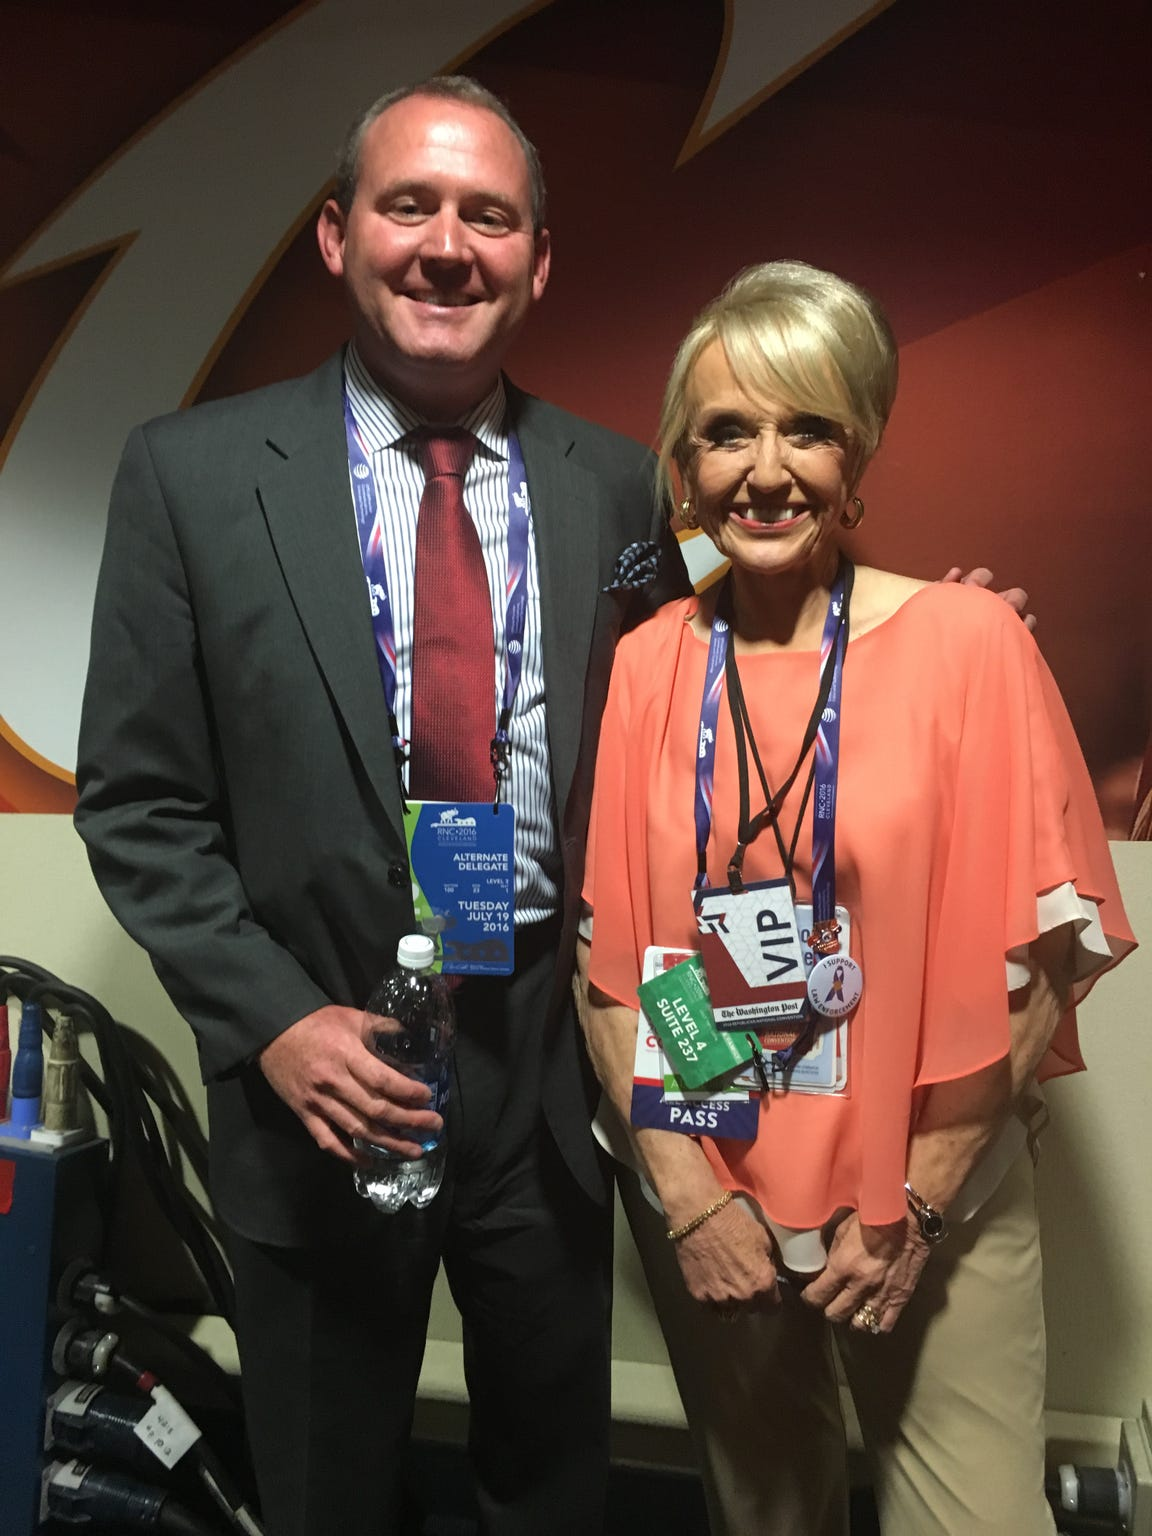 Visiting with former Arizona governor Jan Brewer.